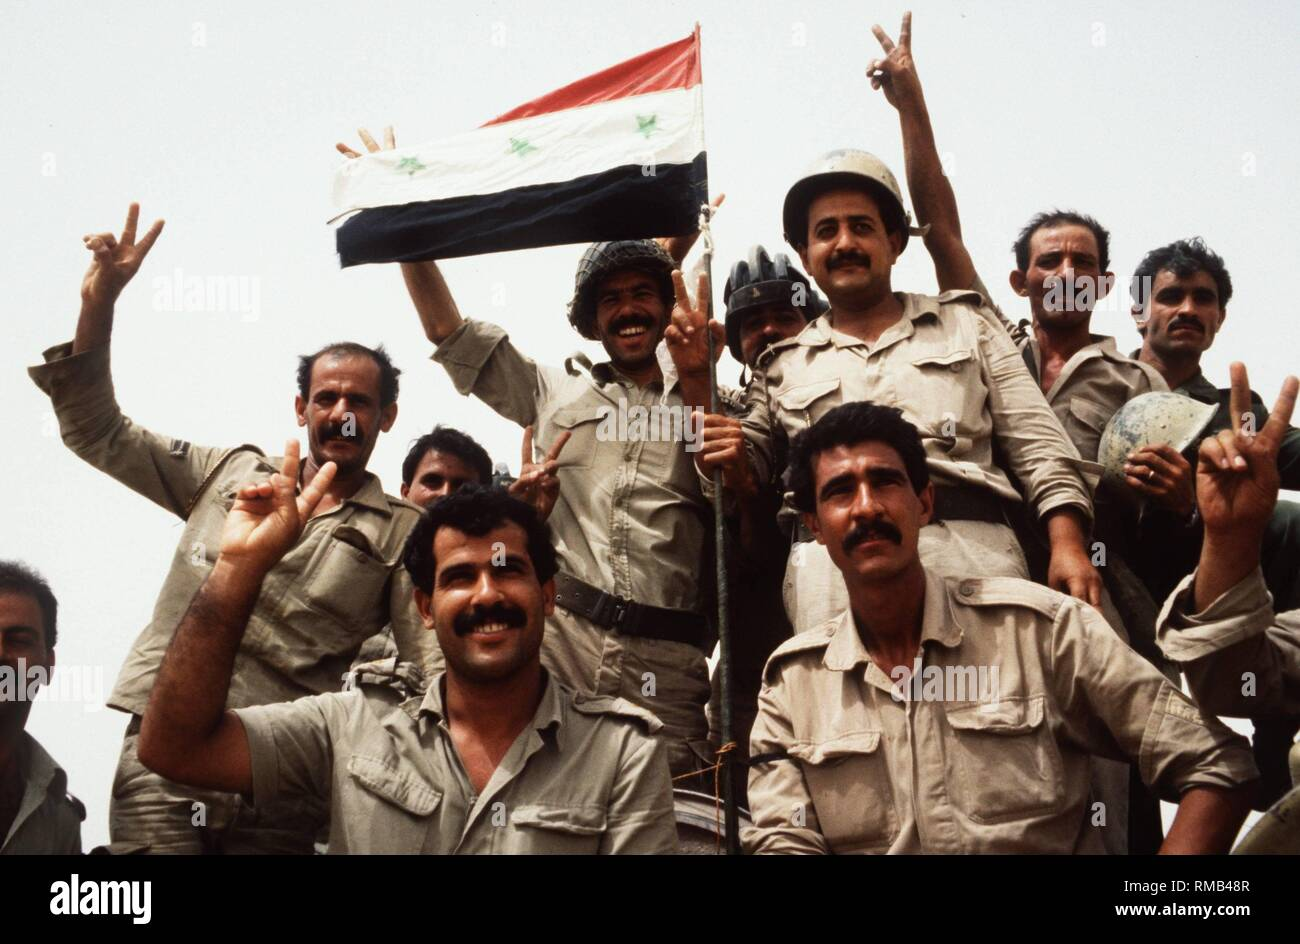 Soldiers of the Iraqi army are certain of their victory in the first Gulf War against Iran. - Stock Image